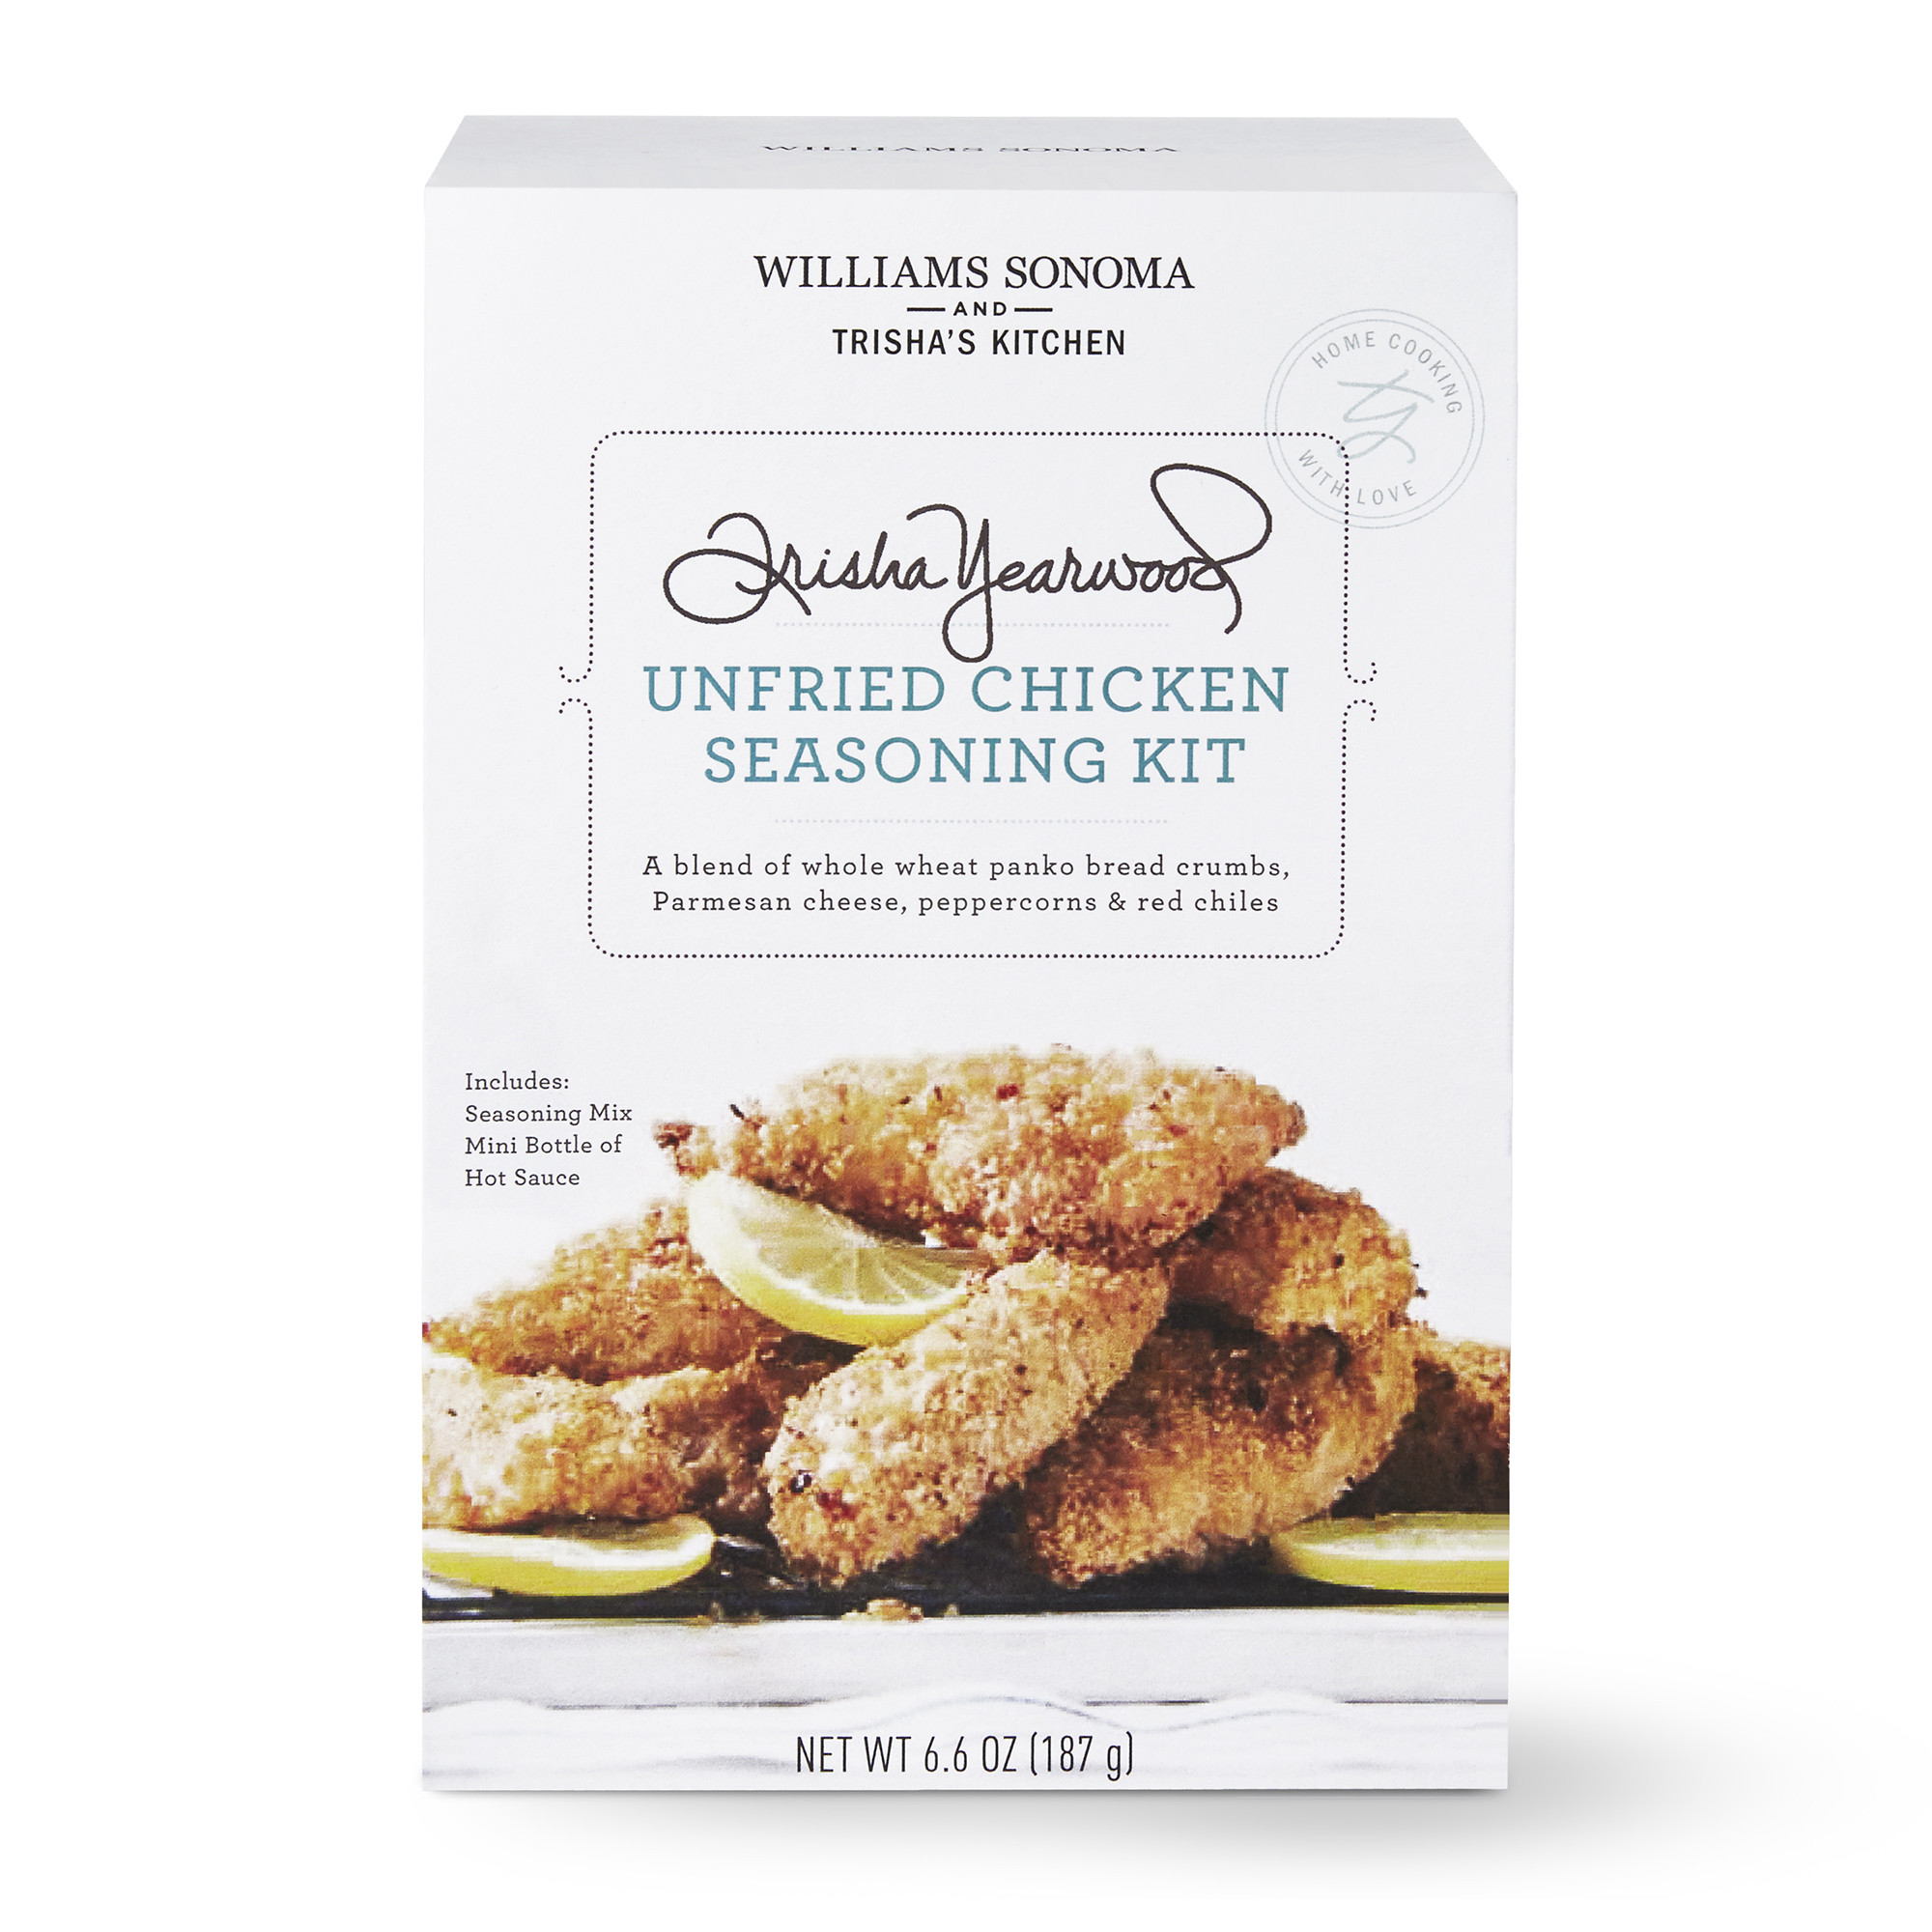 Williams Sonoma and Trisha's Kitchen Unfried Chicken Seasoning Kit (Photo: Business Wire)